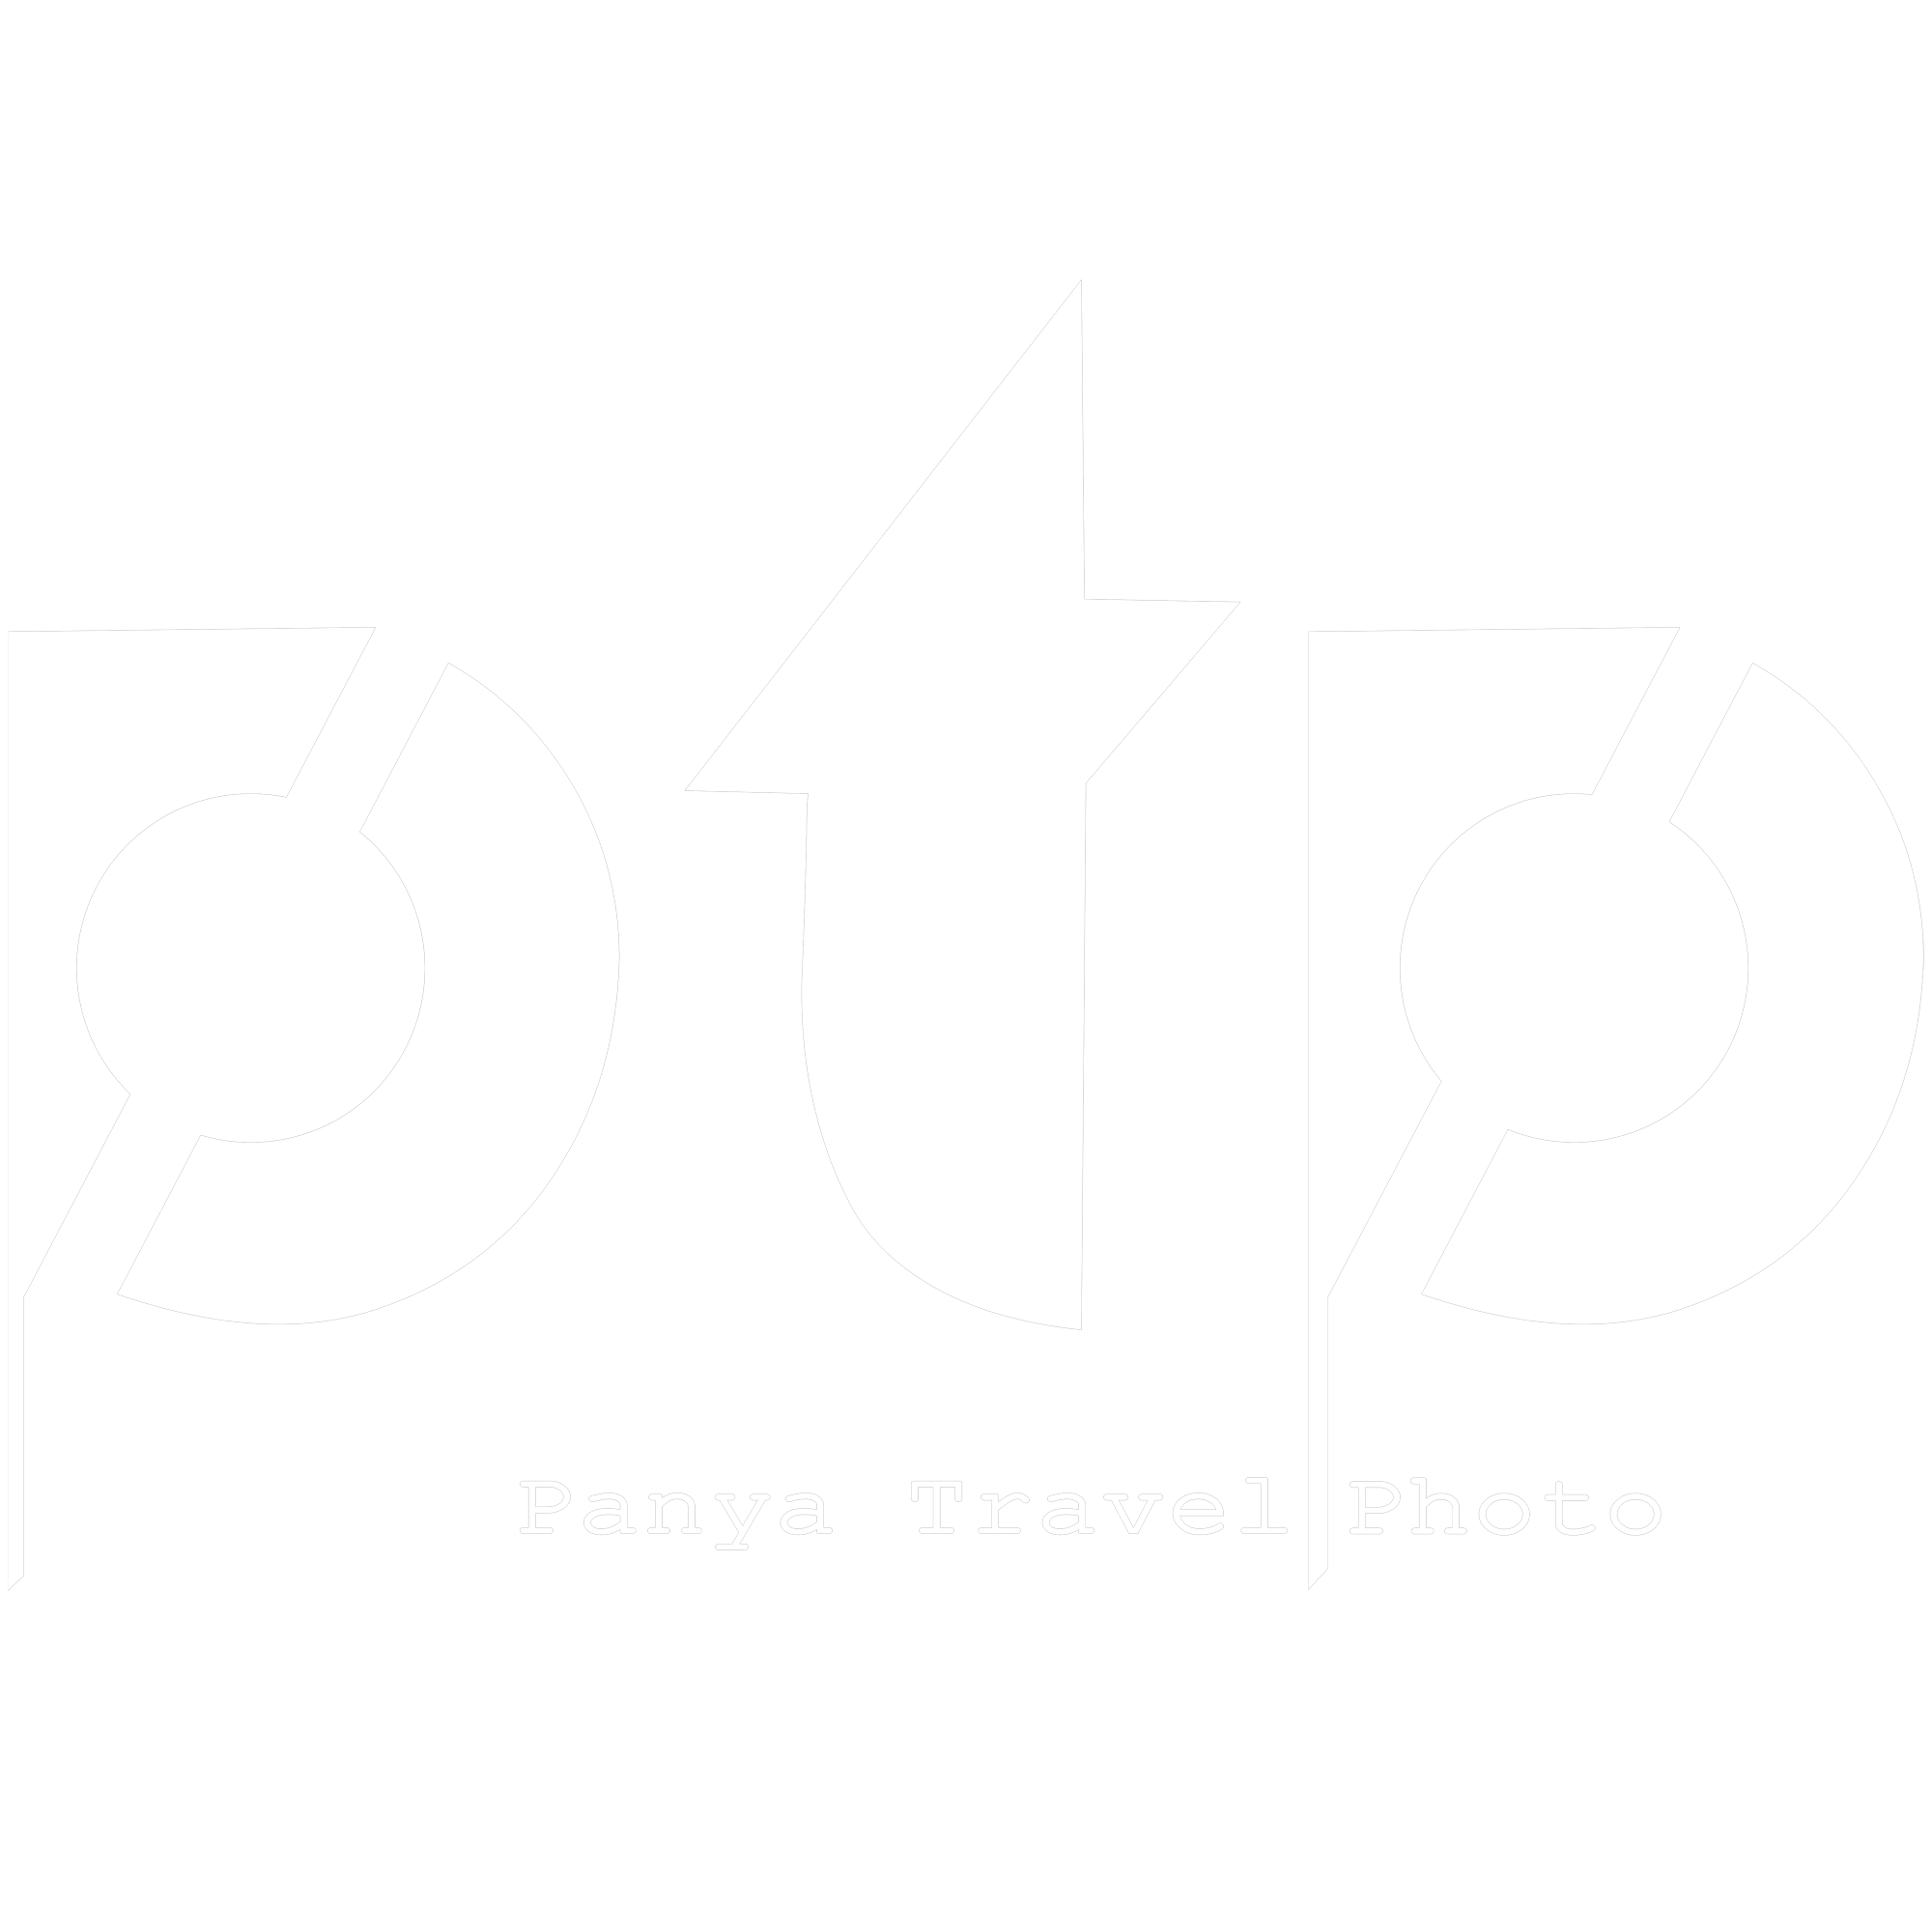 Panya Travel Photo